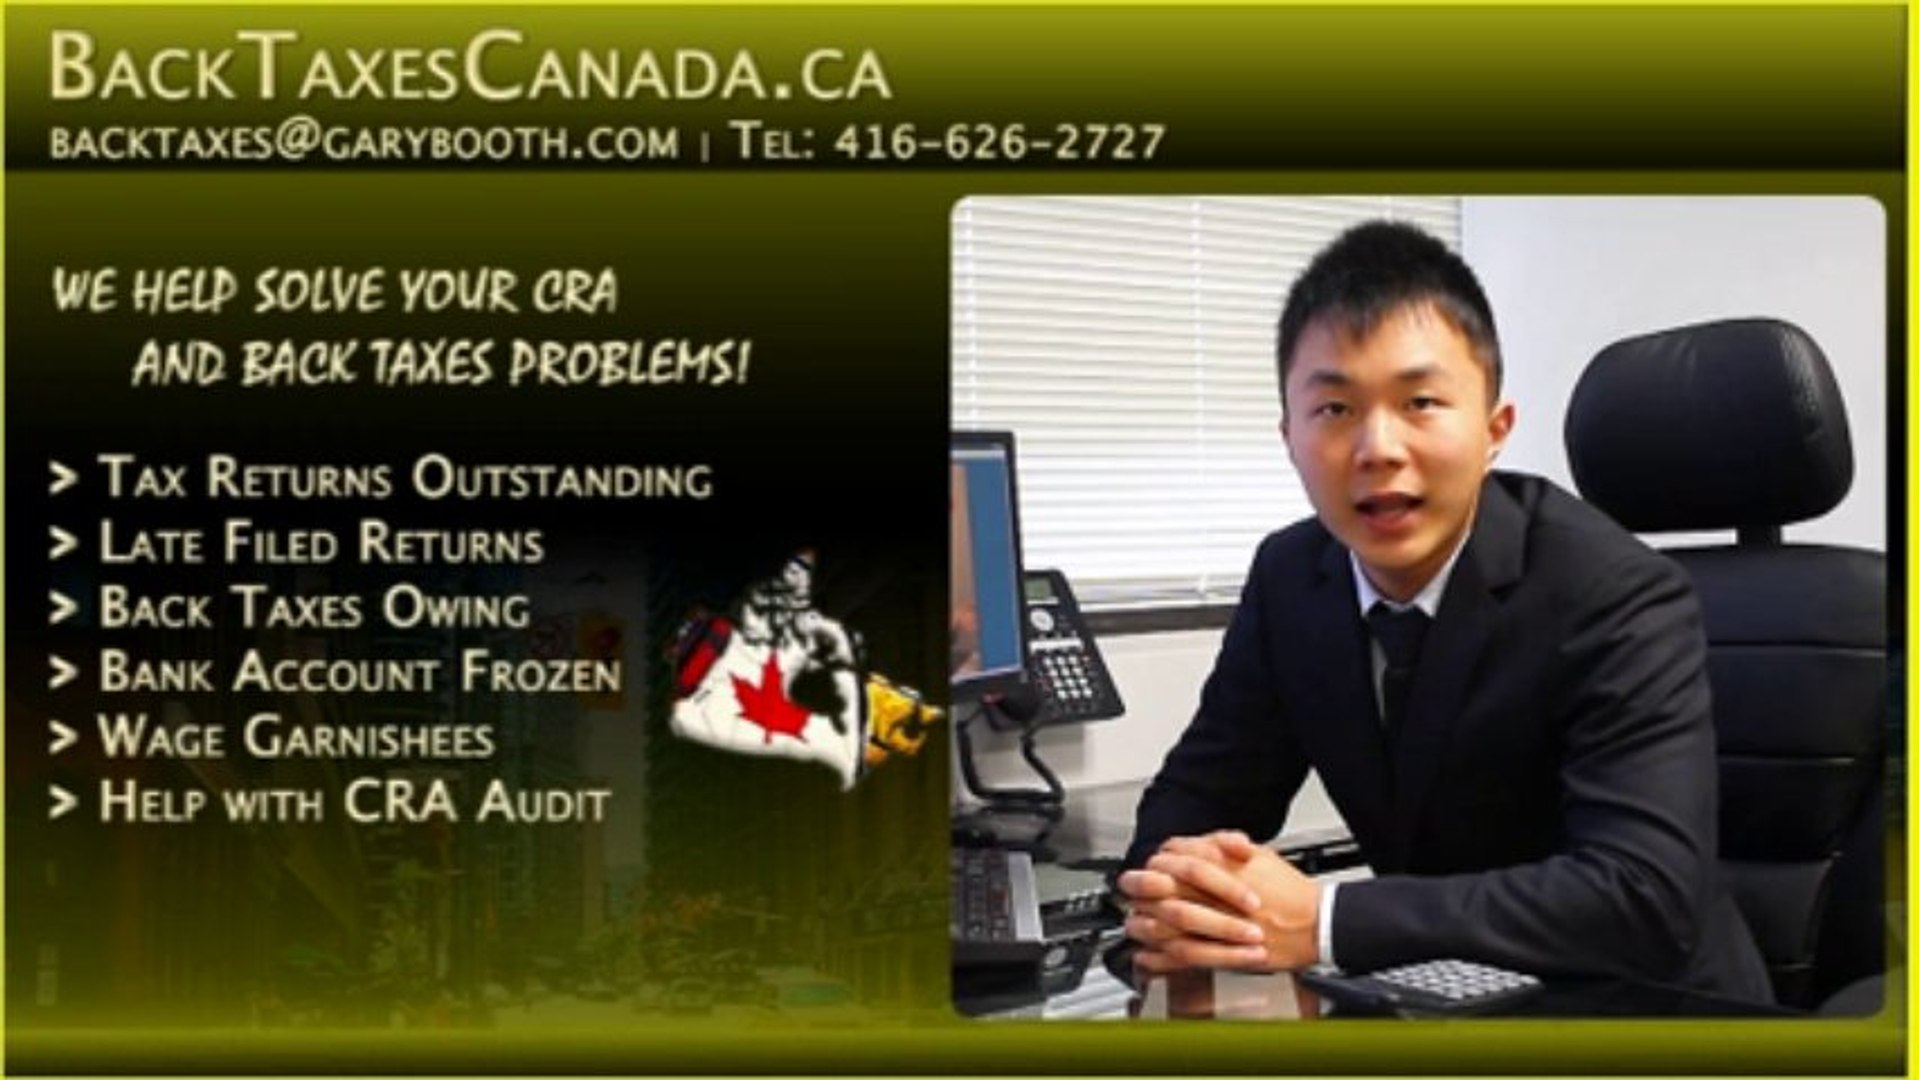 Back Taxes Canada.ca | Negotiate a Payment Plan, Stop bank account freezing + Wage garnishment .